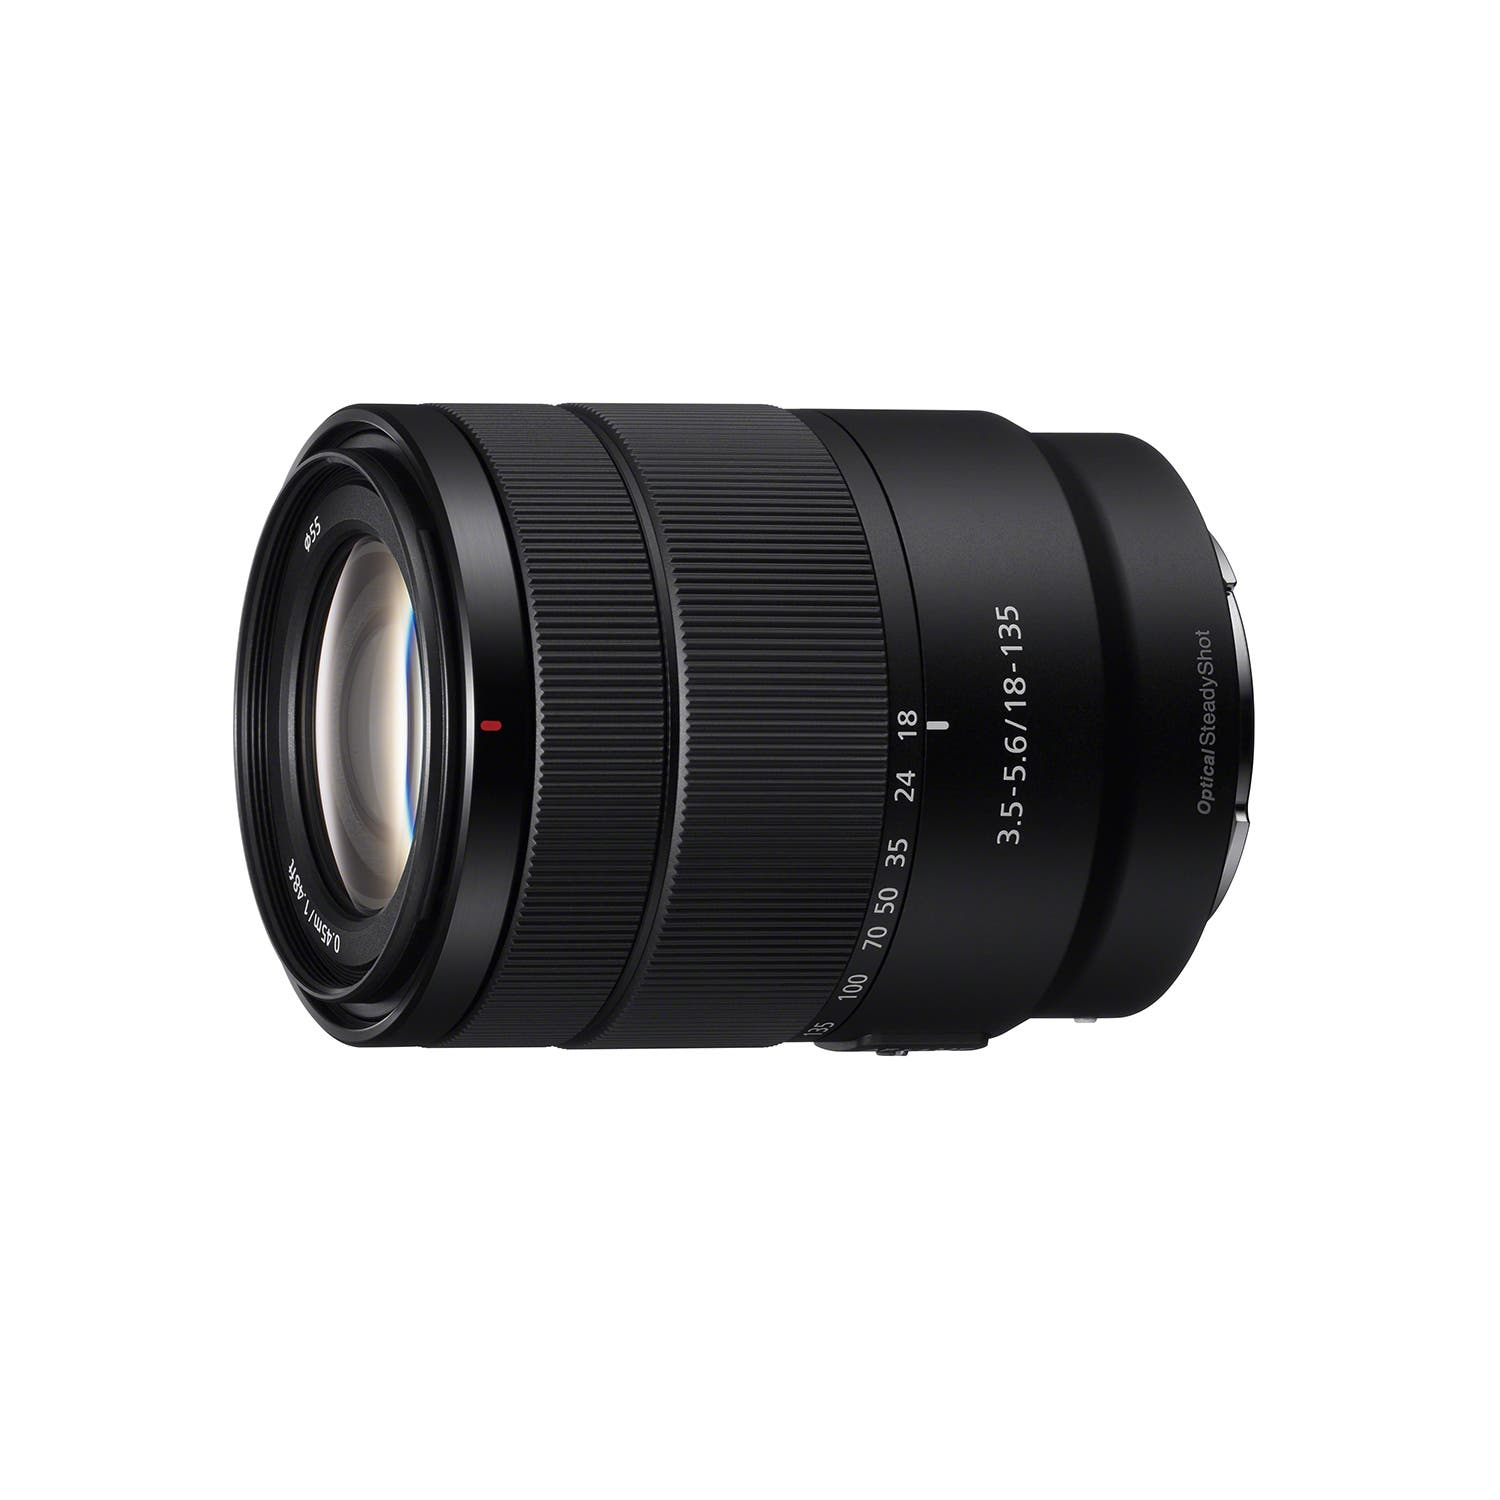 The Sony E 18-135mm F3.5-5.6 OSS Could Be Perfect for Travel Enthusiasts